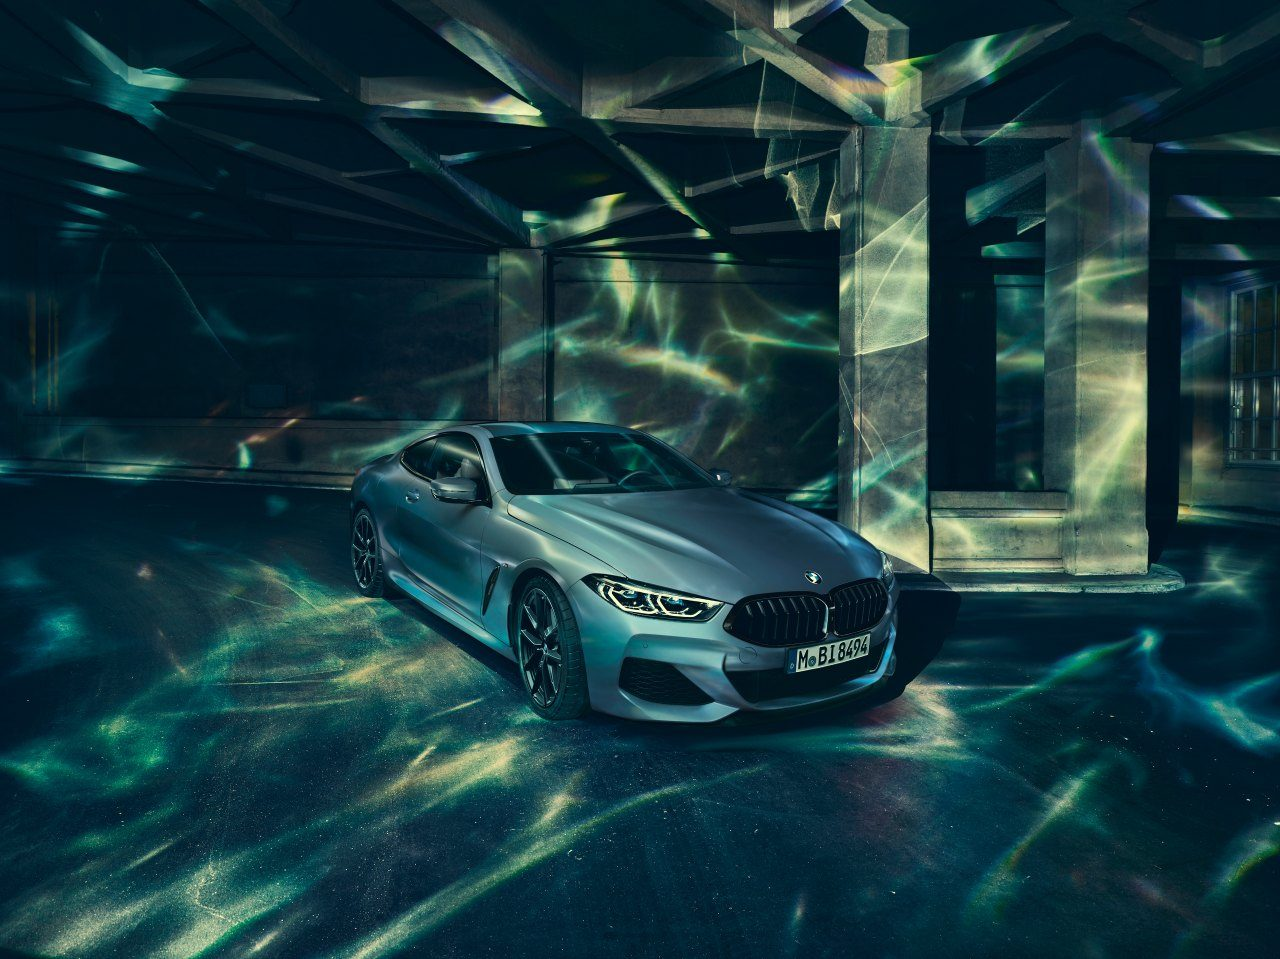 bmw-m850i_xdrive_blue_first_edition_G15_2019_1.jpg